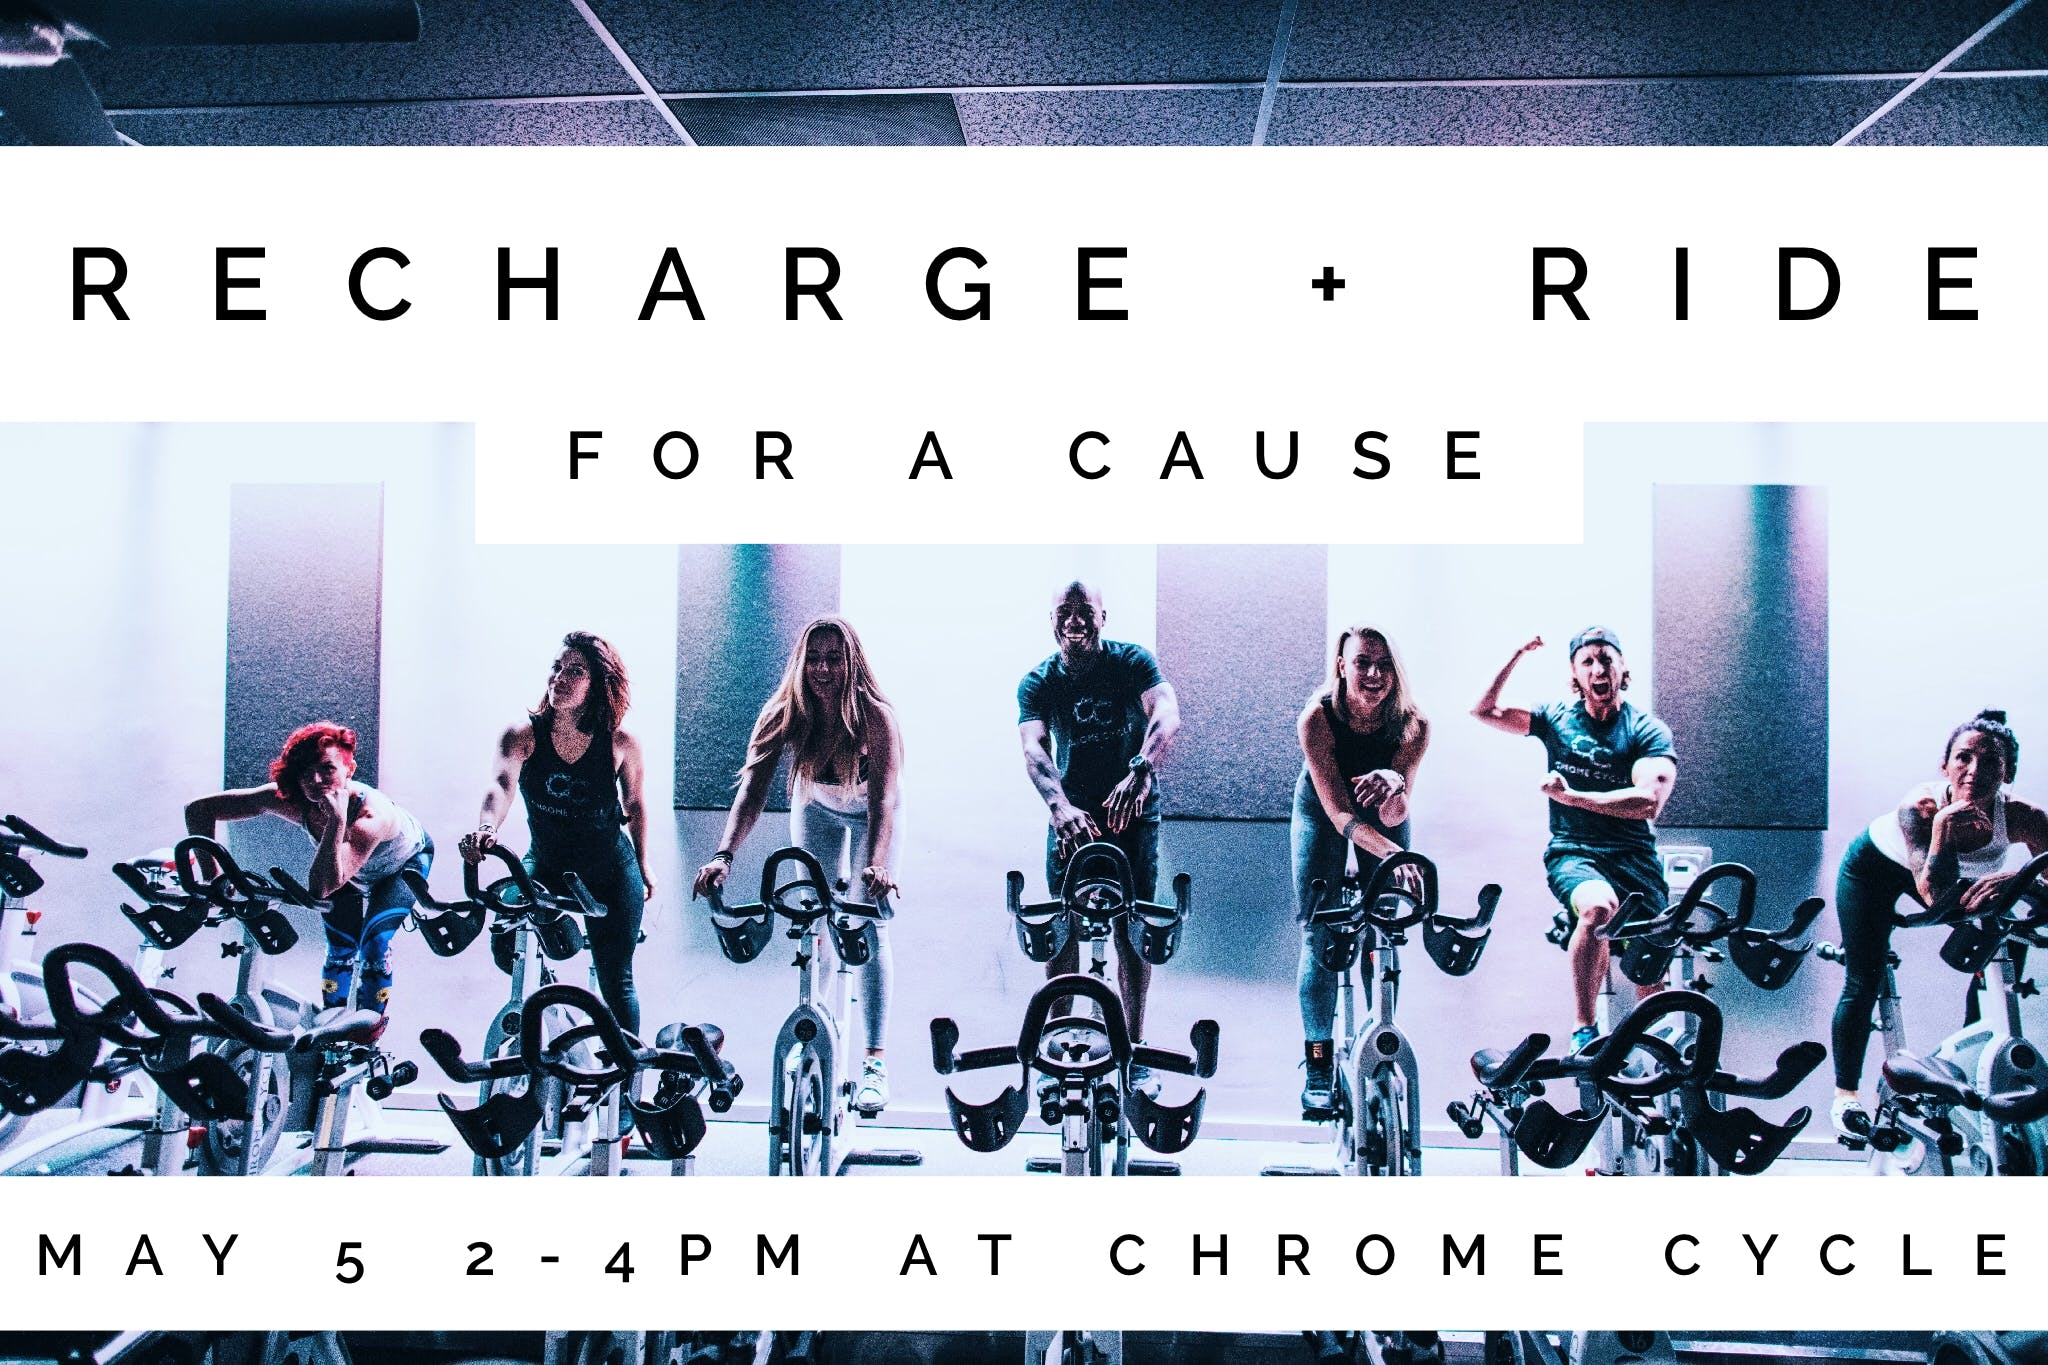 RECHARGE + RIDE FOR A CAUSE